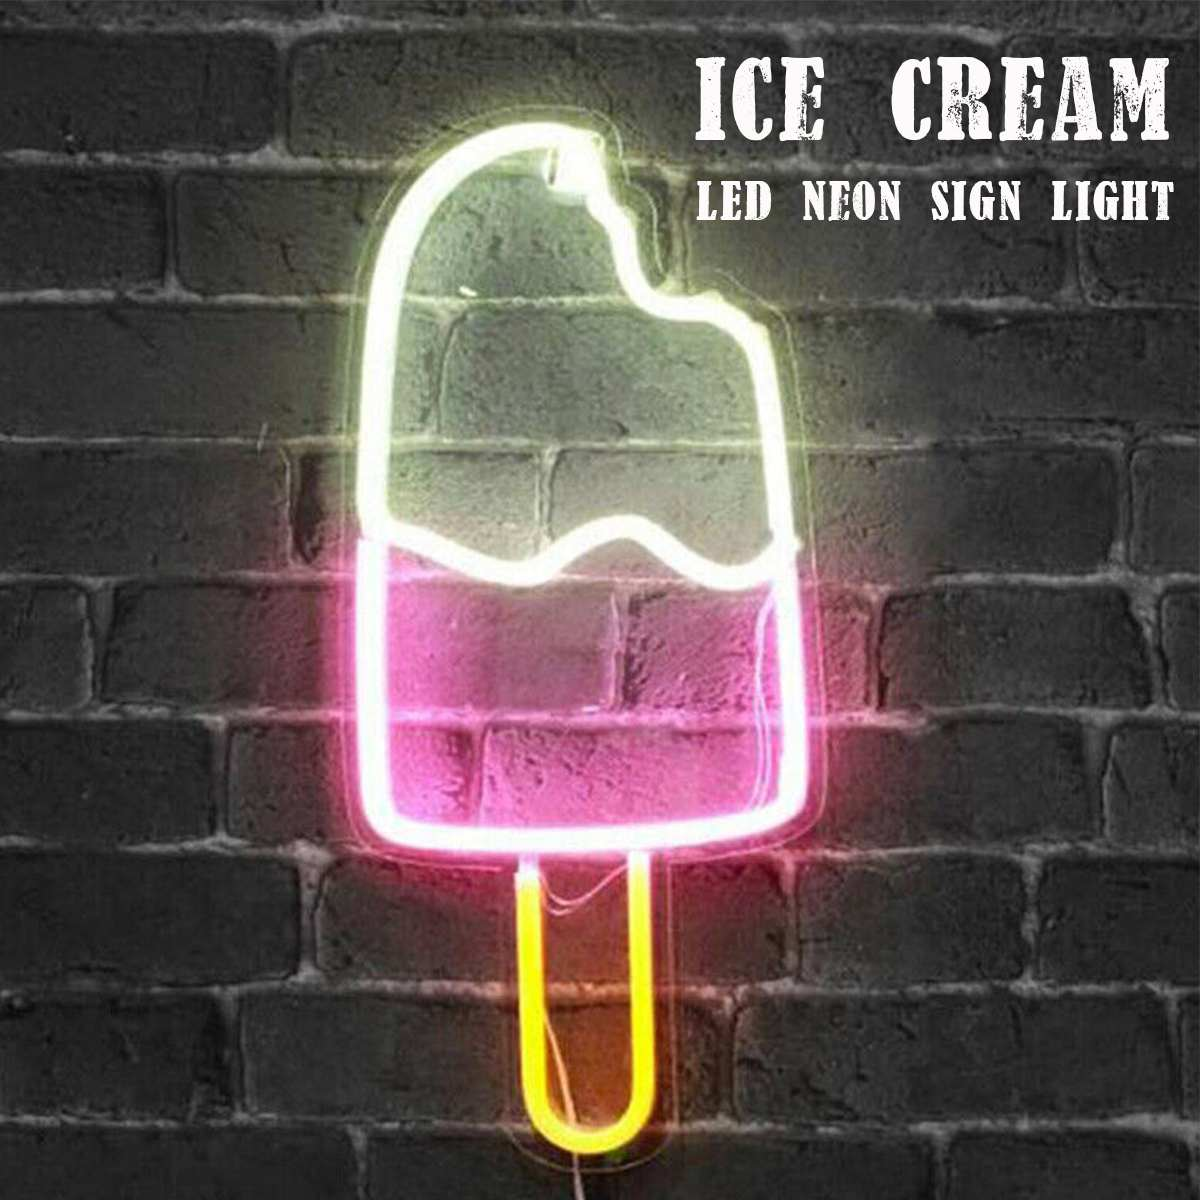 LED Neon Sign Light Ice Cream Neon Tube for Beer Bar Wall Decoration Bedroom Home Party Christmas Gift 45.1x20.3CM Neon Lamp image